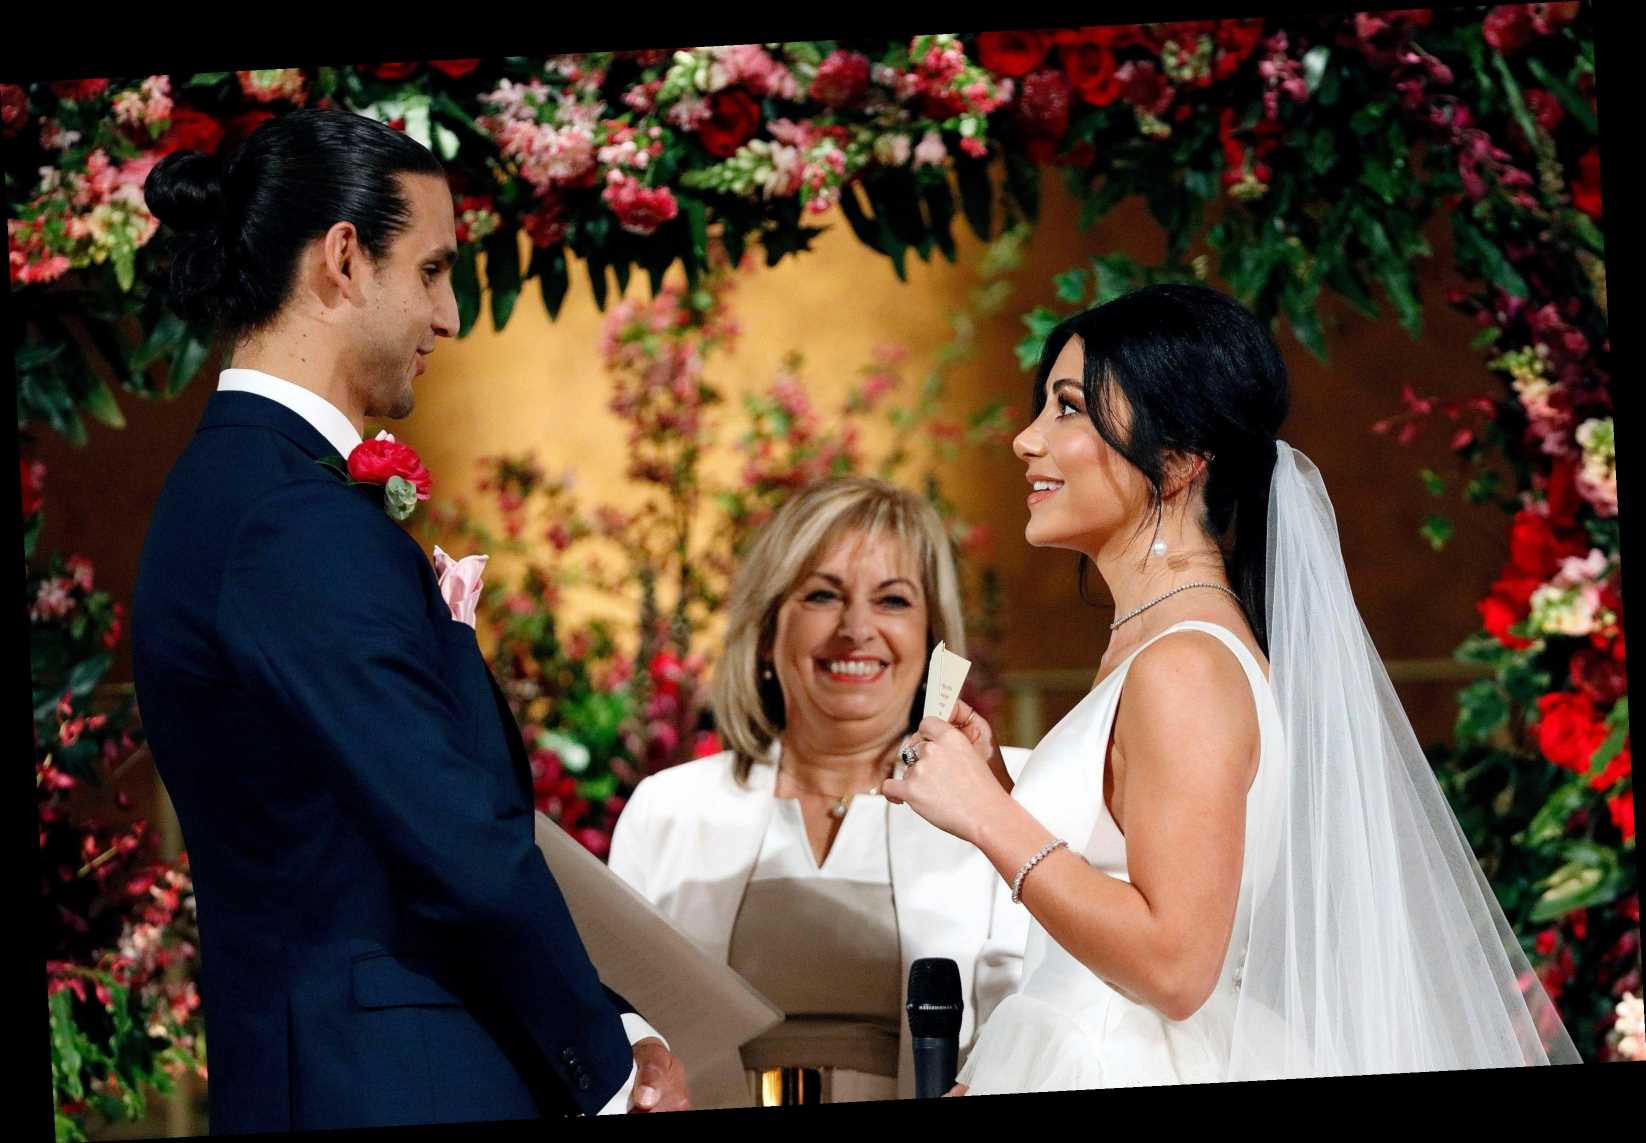 Married At First Sight Australia's fancy weddings aren't real or legally binding, producers admit